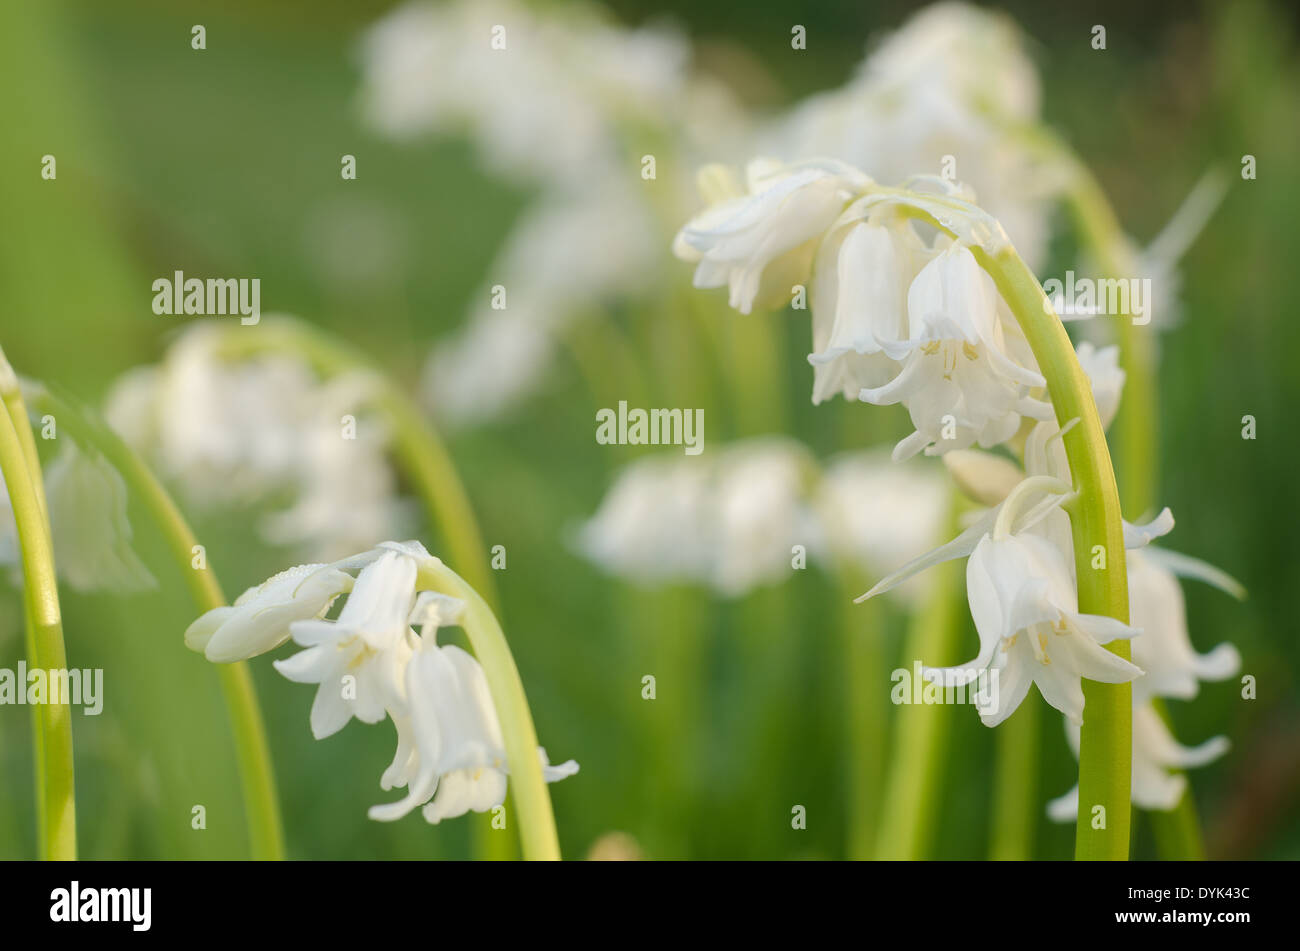 Possibly Spanish Stock Photos & Possibly Spanish Stock Images - Alamy